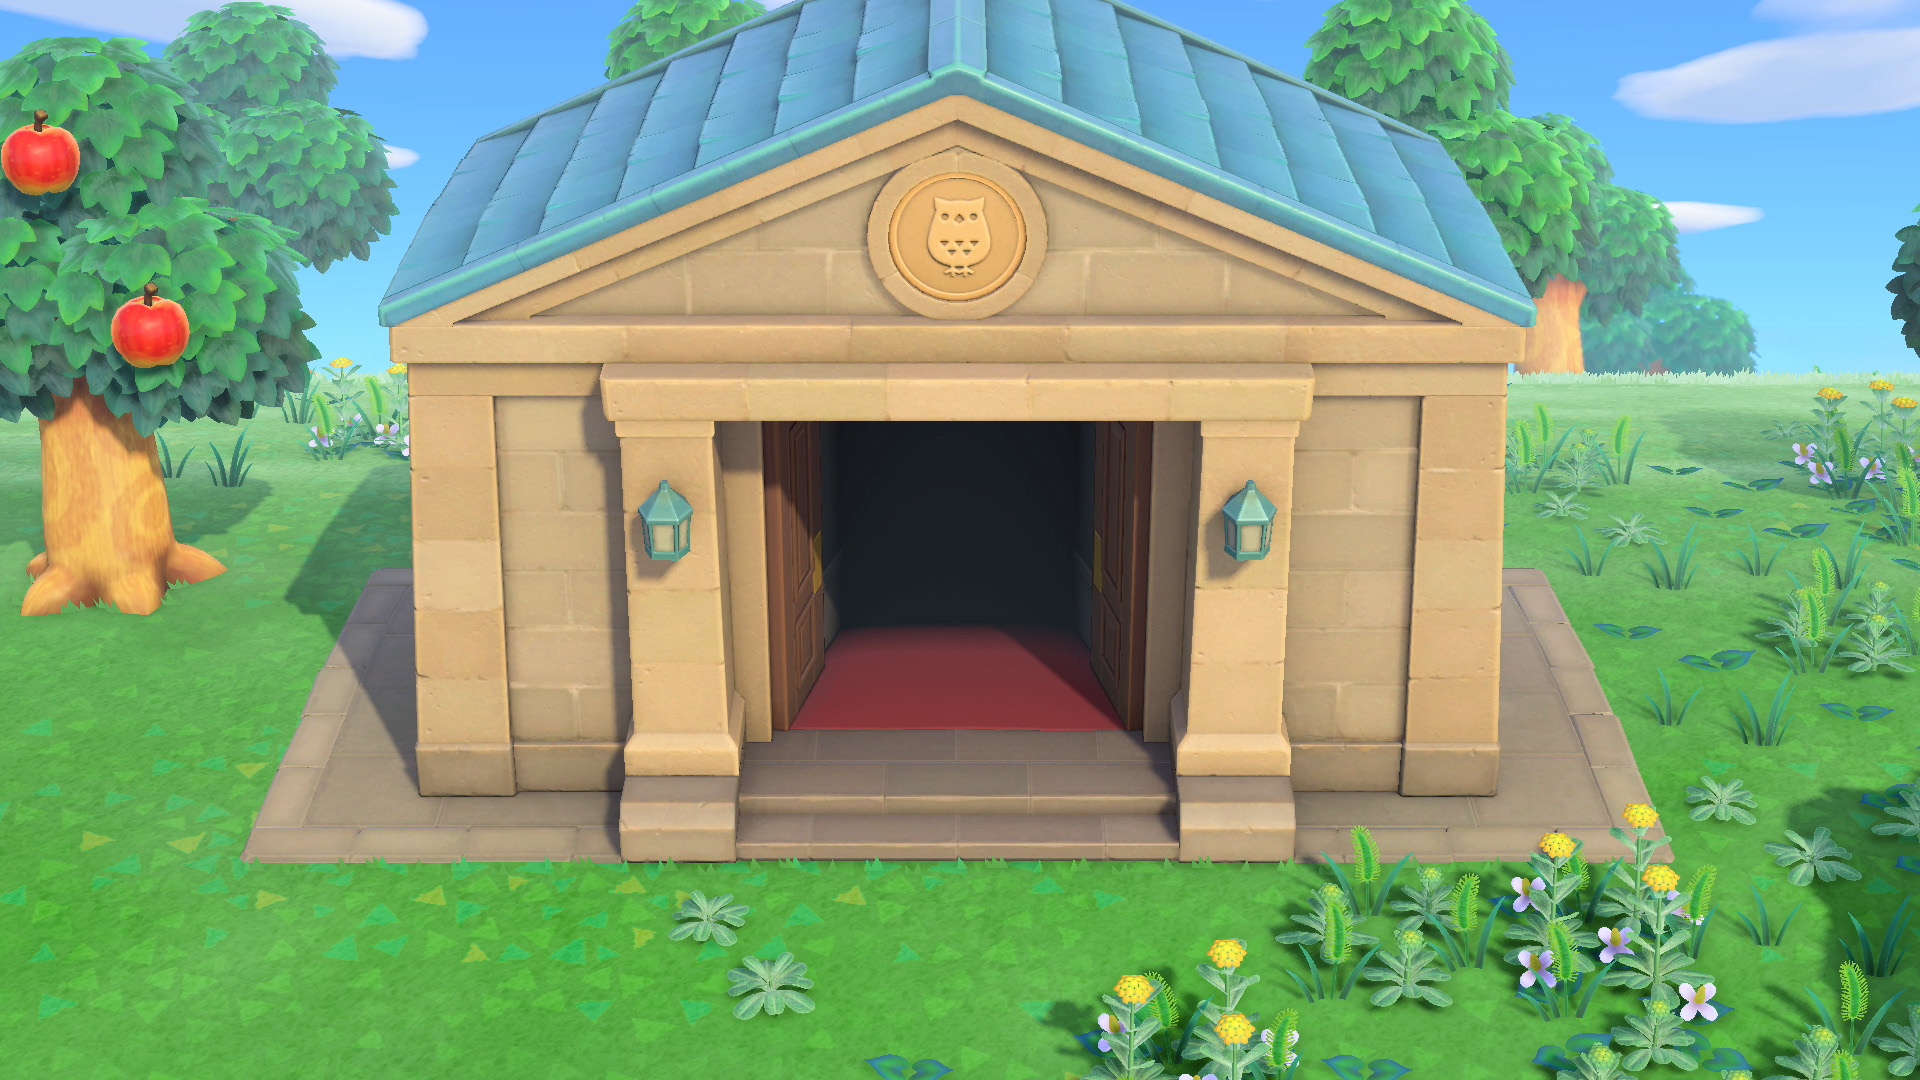 5 Small Details You Might Have Missed In The April Animal Crossing New Horizons Update Reveal Animal Crossing World